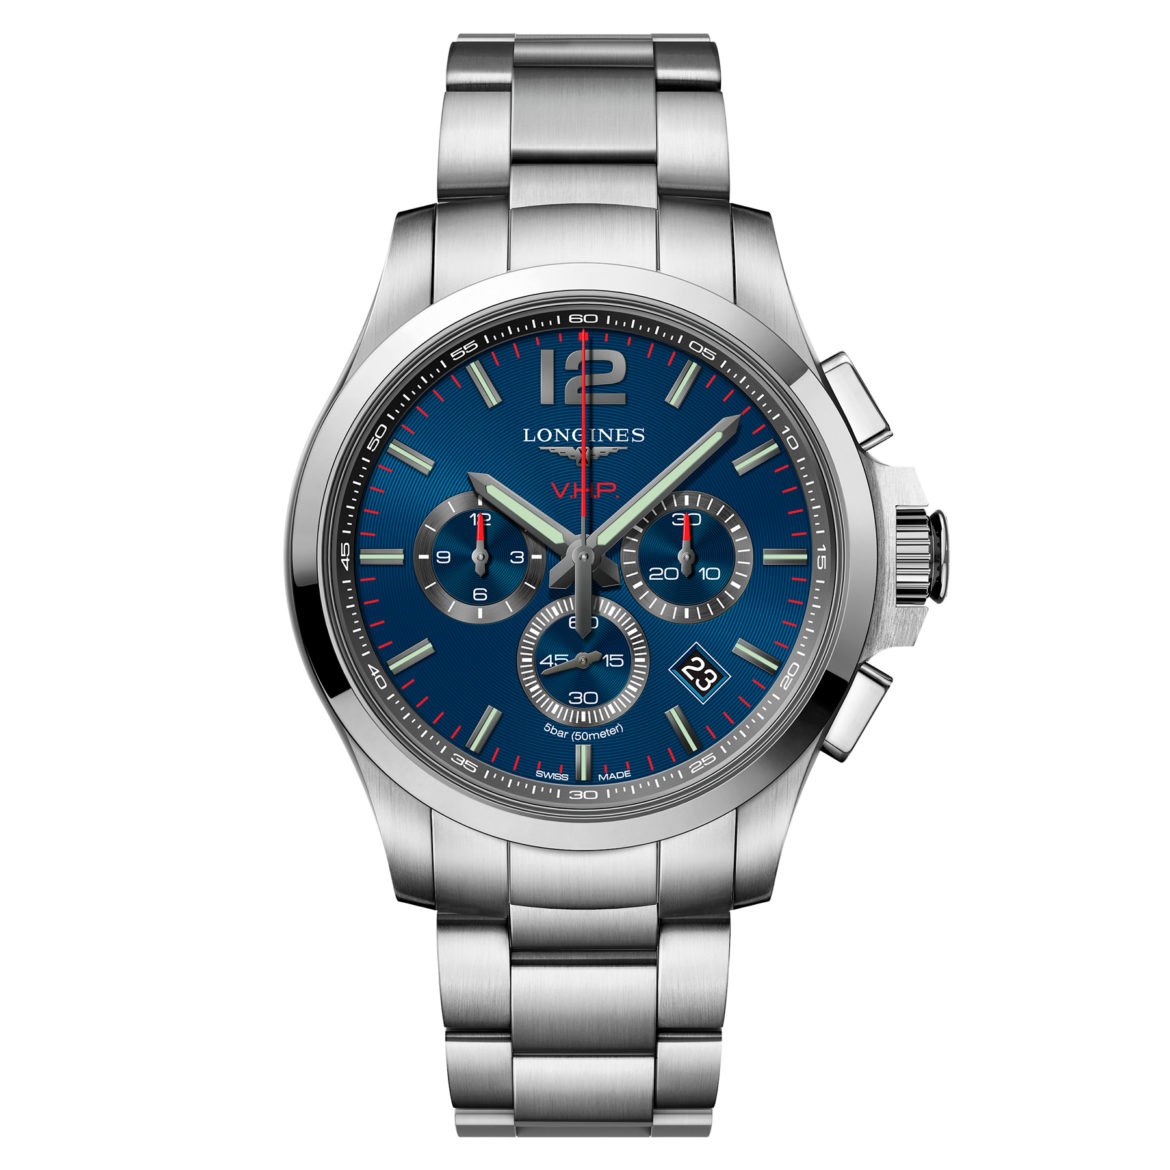 LONGINES</br/>Conquest VHP</br/>L37274966